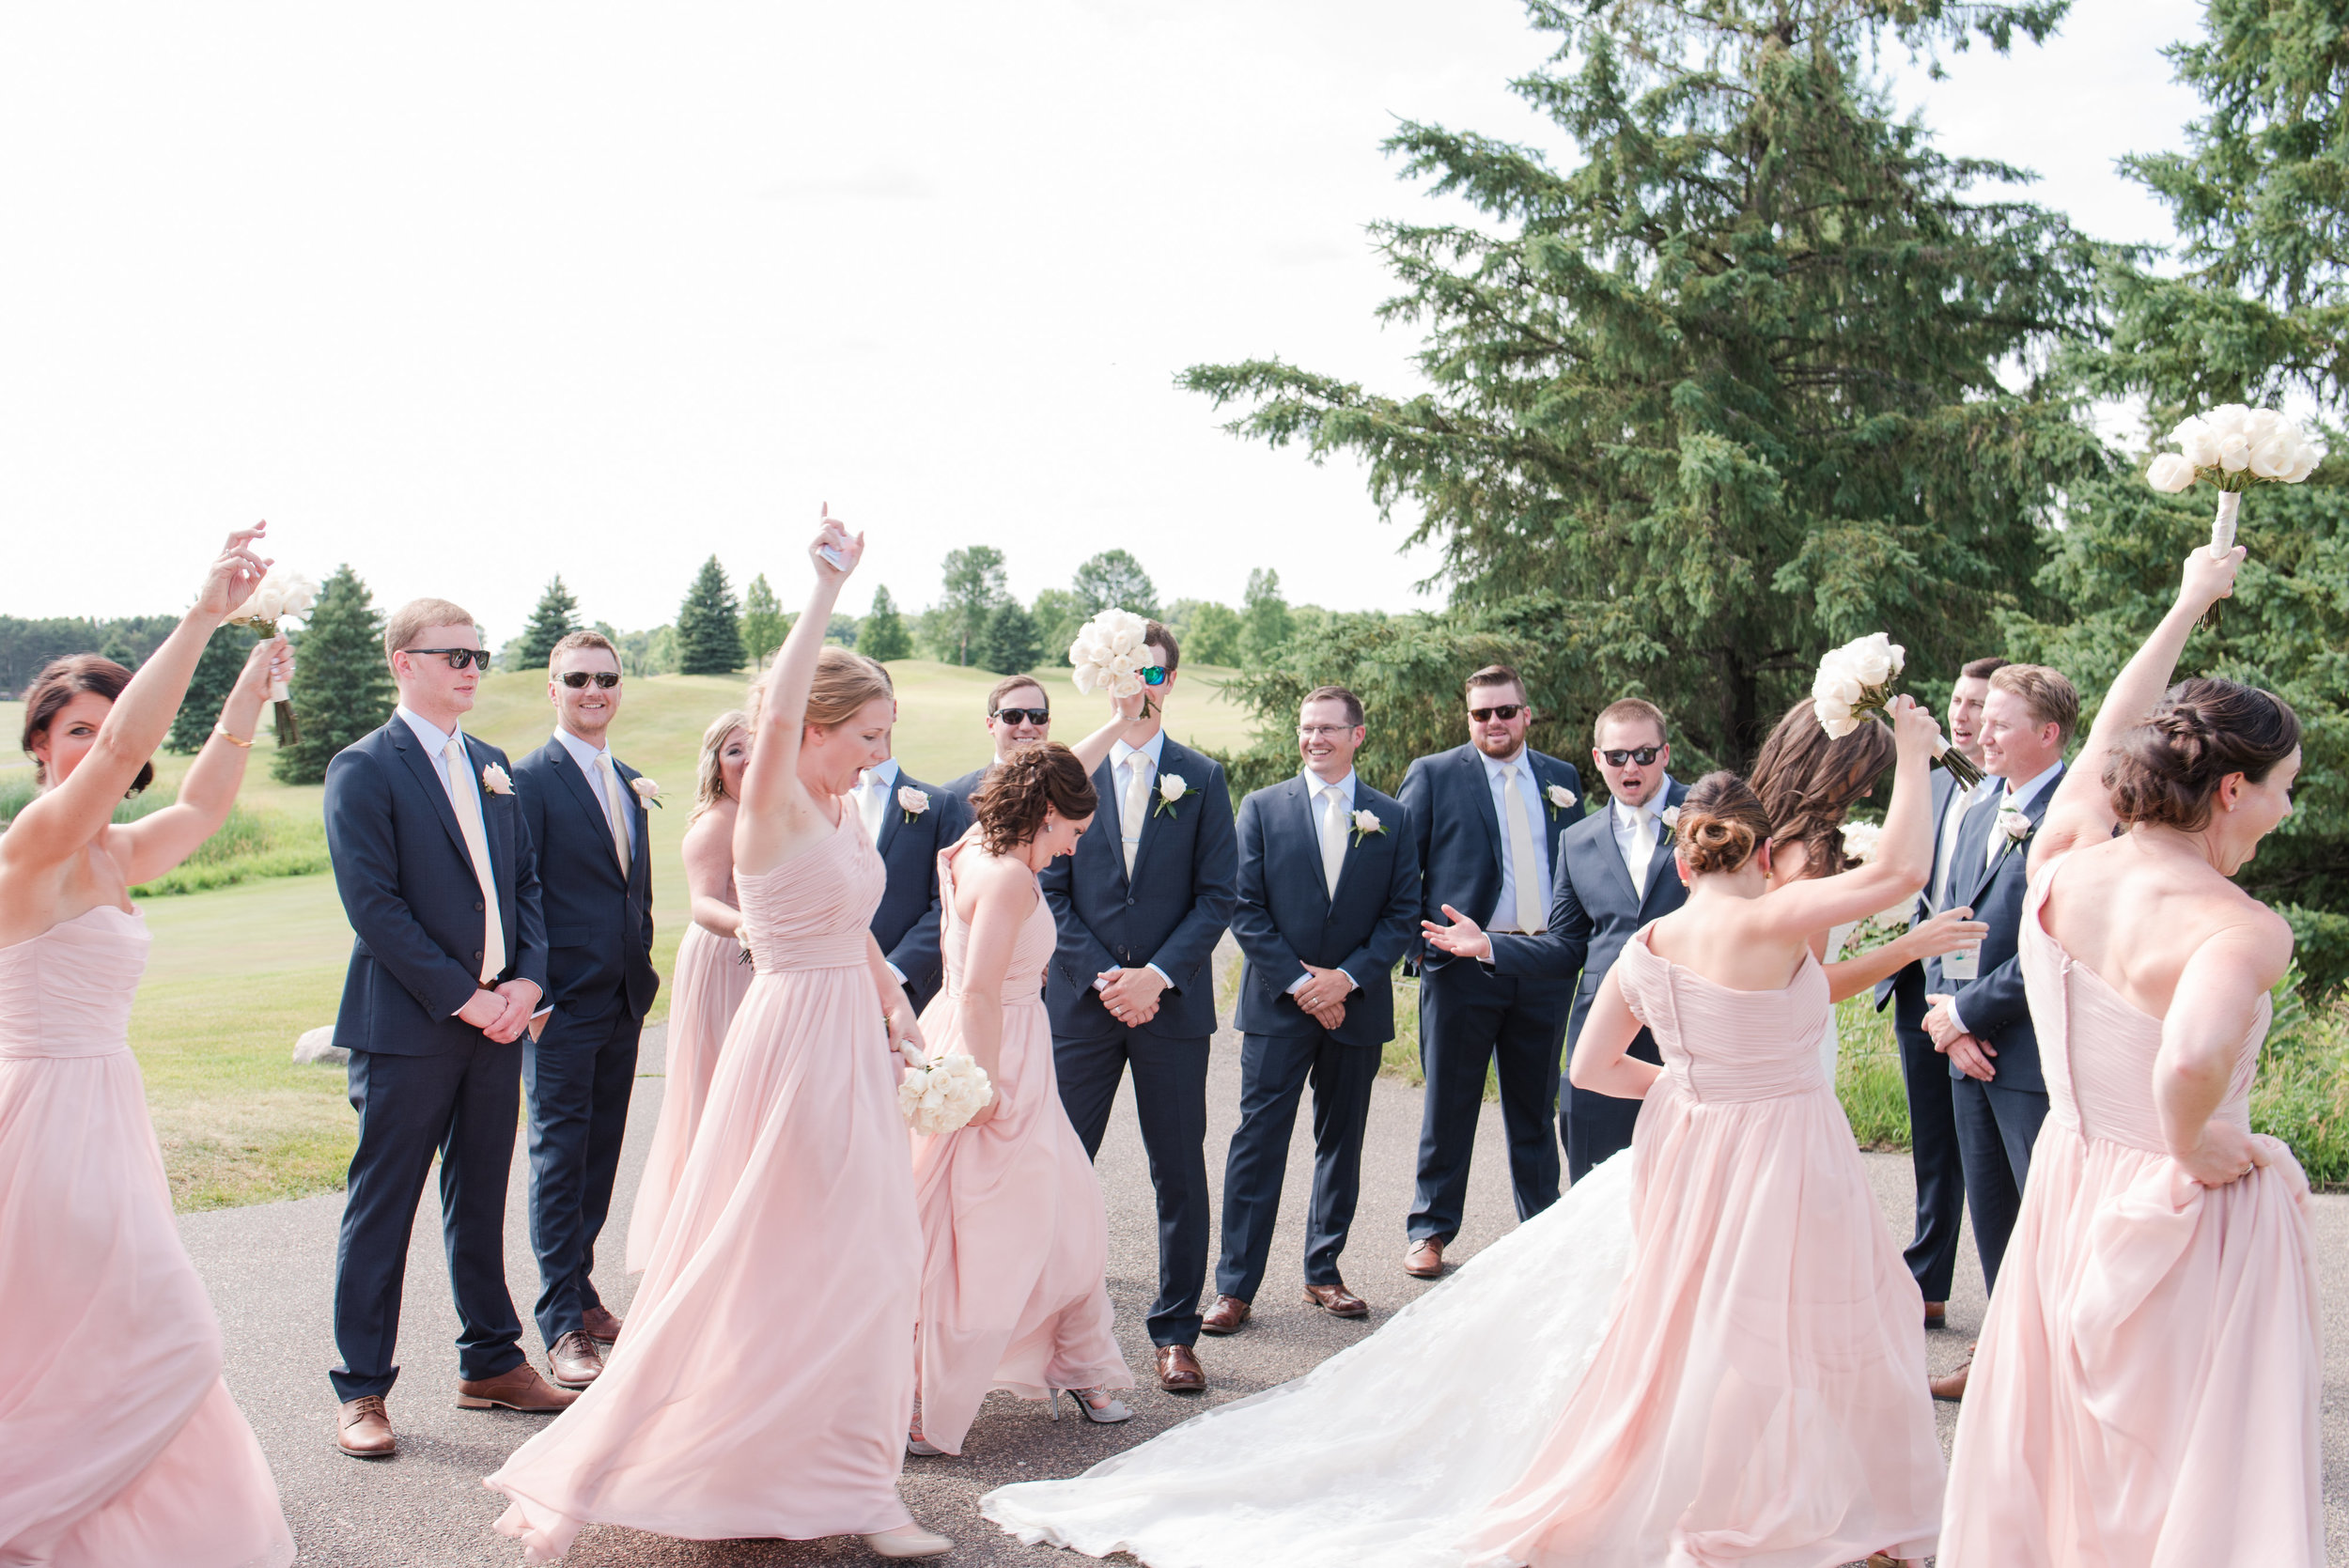 Lumos Images Punch of personality in your wedding | Minnesota wedding blog by Sixpence Events and Planning